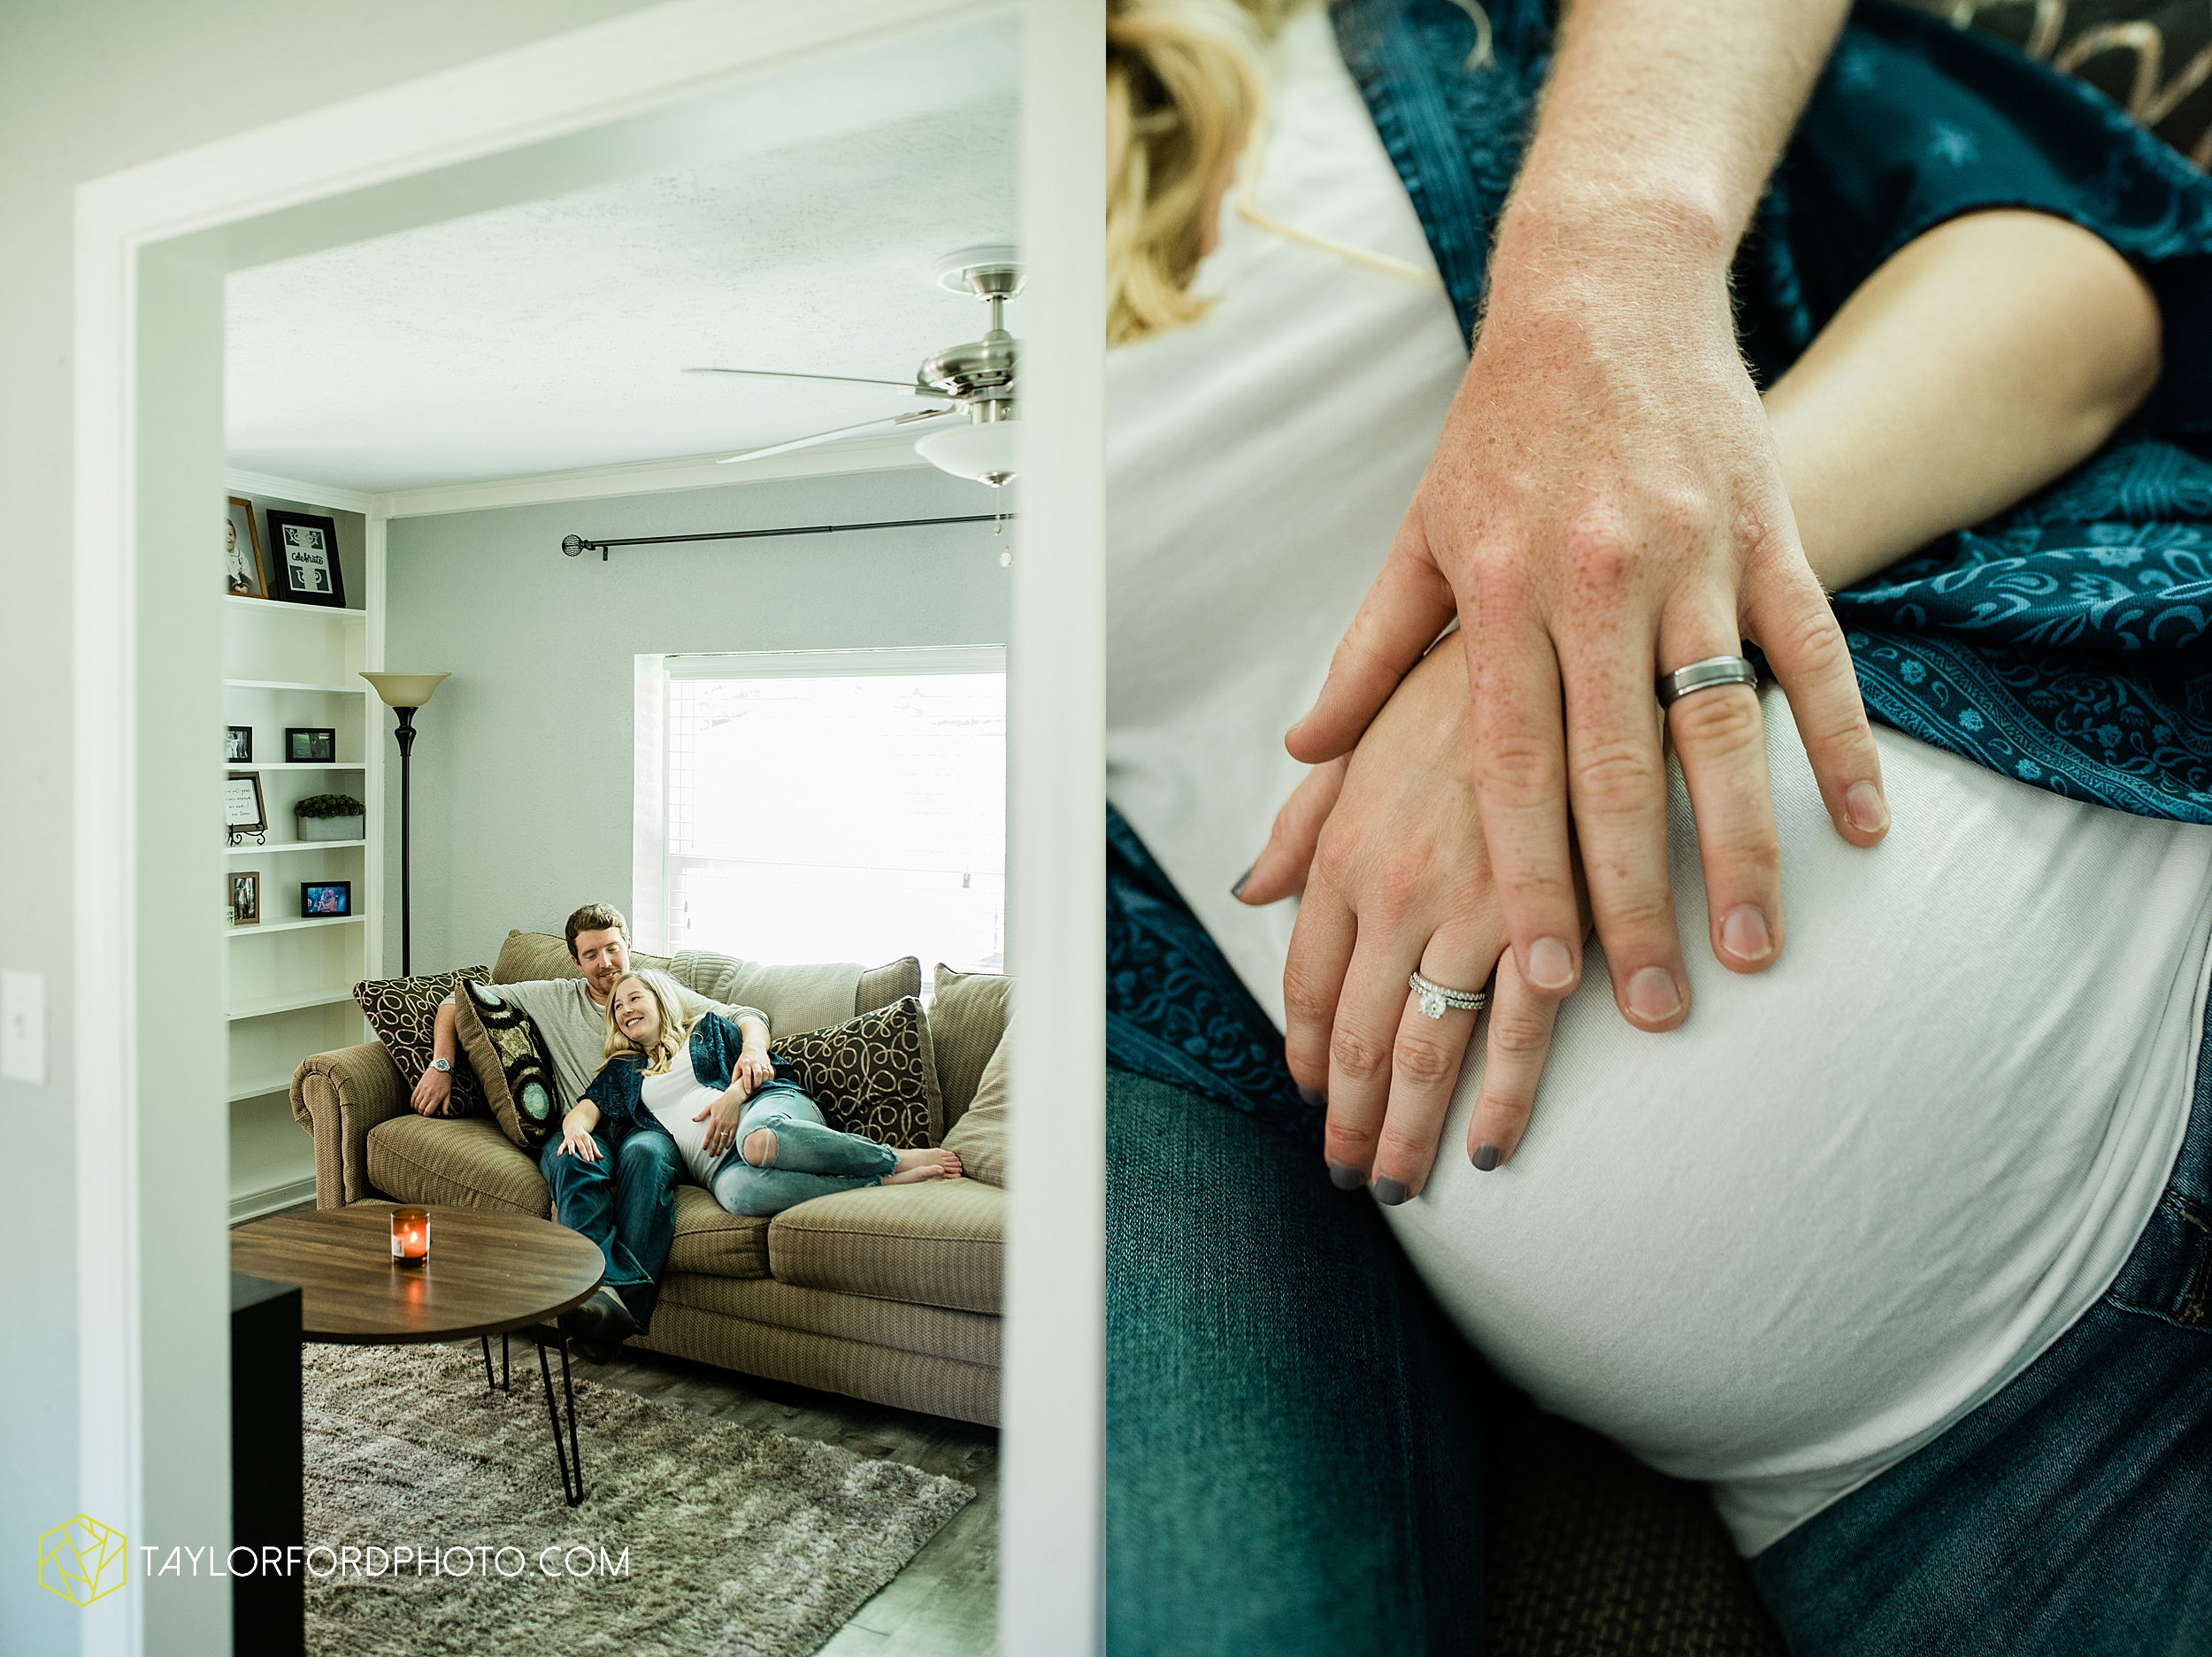 maumee-toledo-ohio-downtown-at-home-maternity-newborn-photographer-photography-taylor-ford-hirschy-photographer_3003.jpg